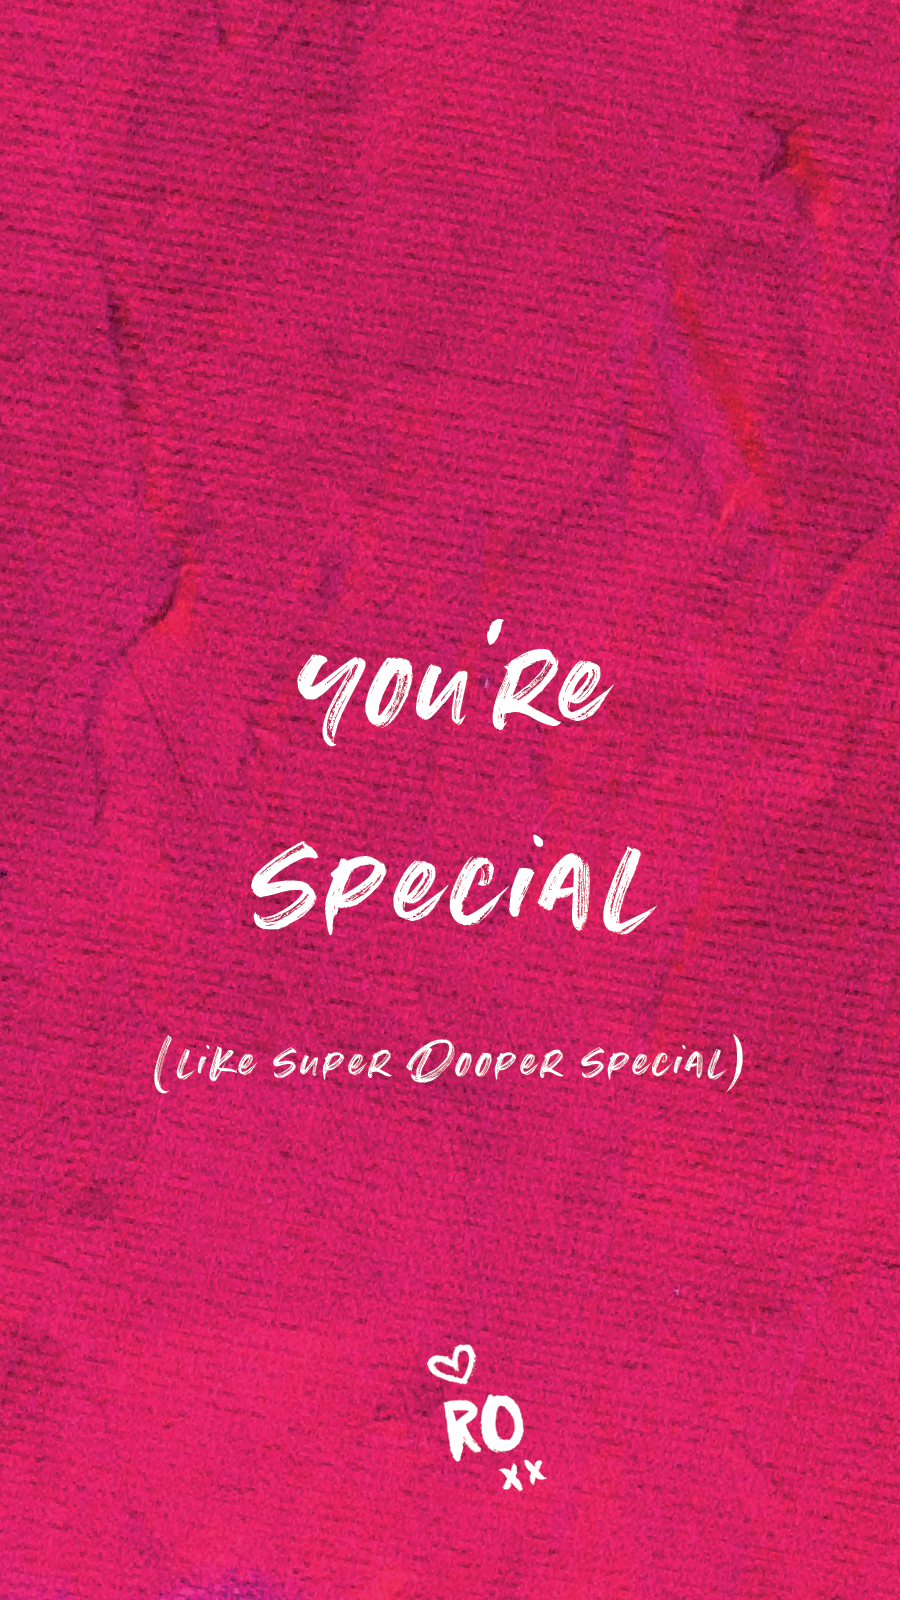 You're Special - Ruby Olive Wallpaper